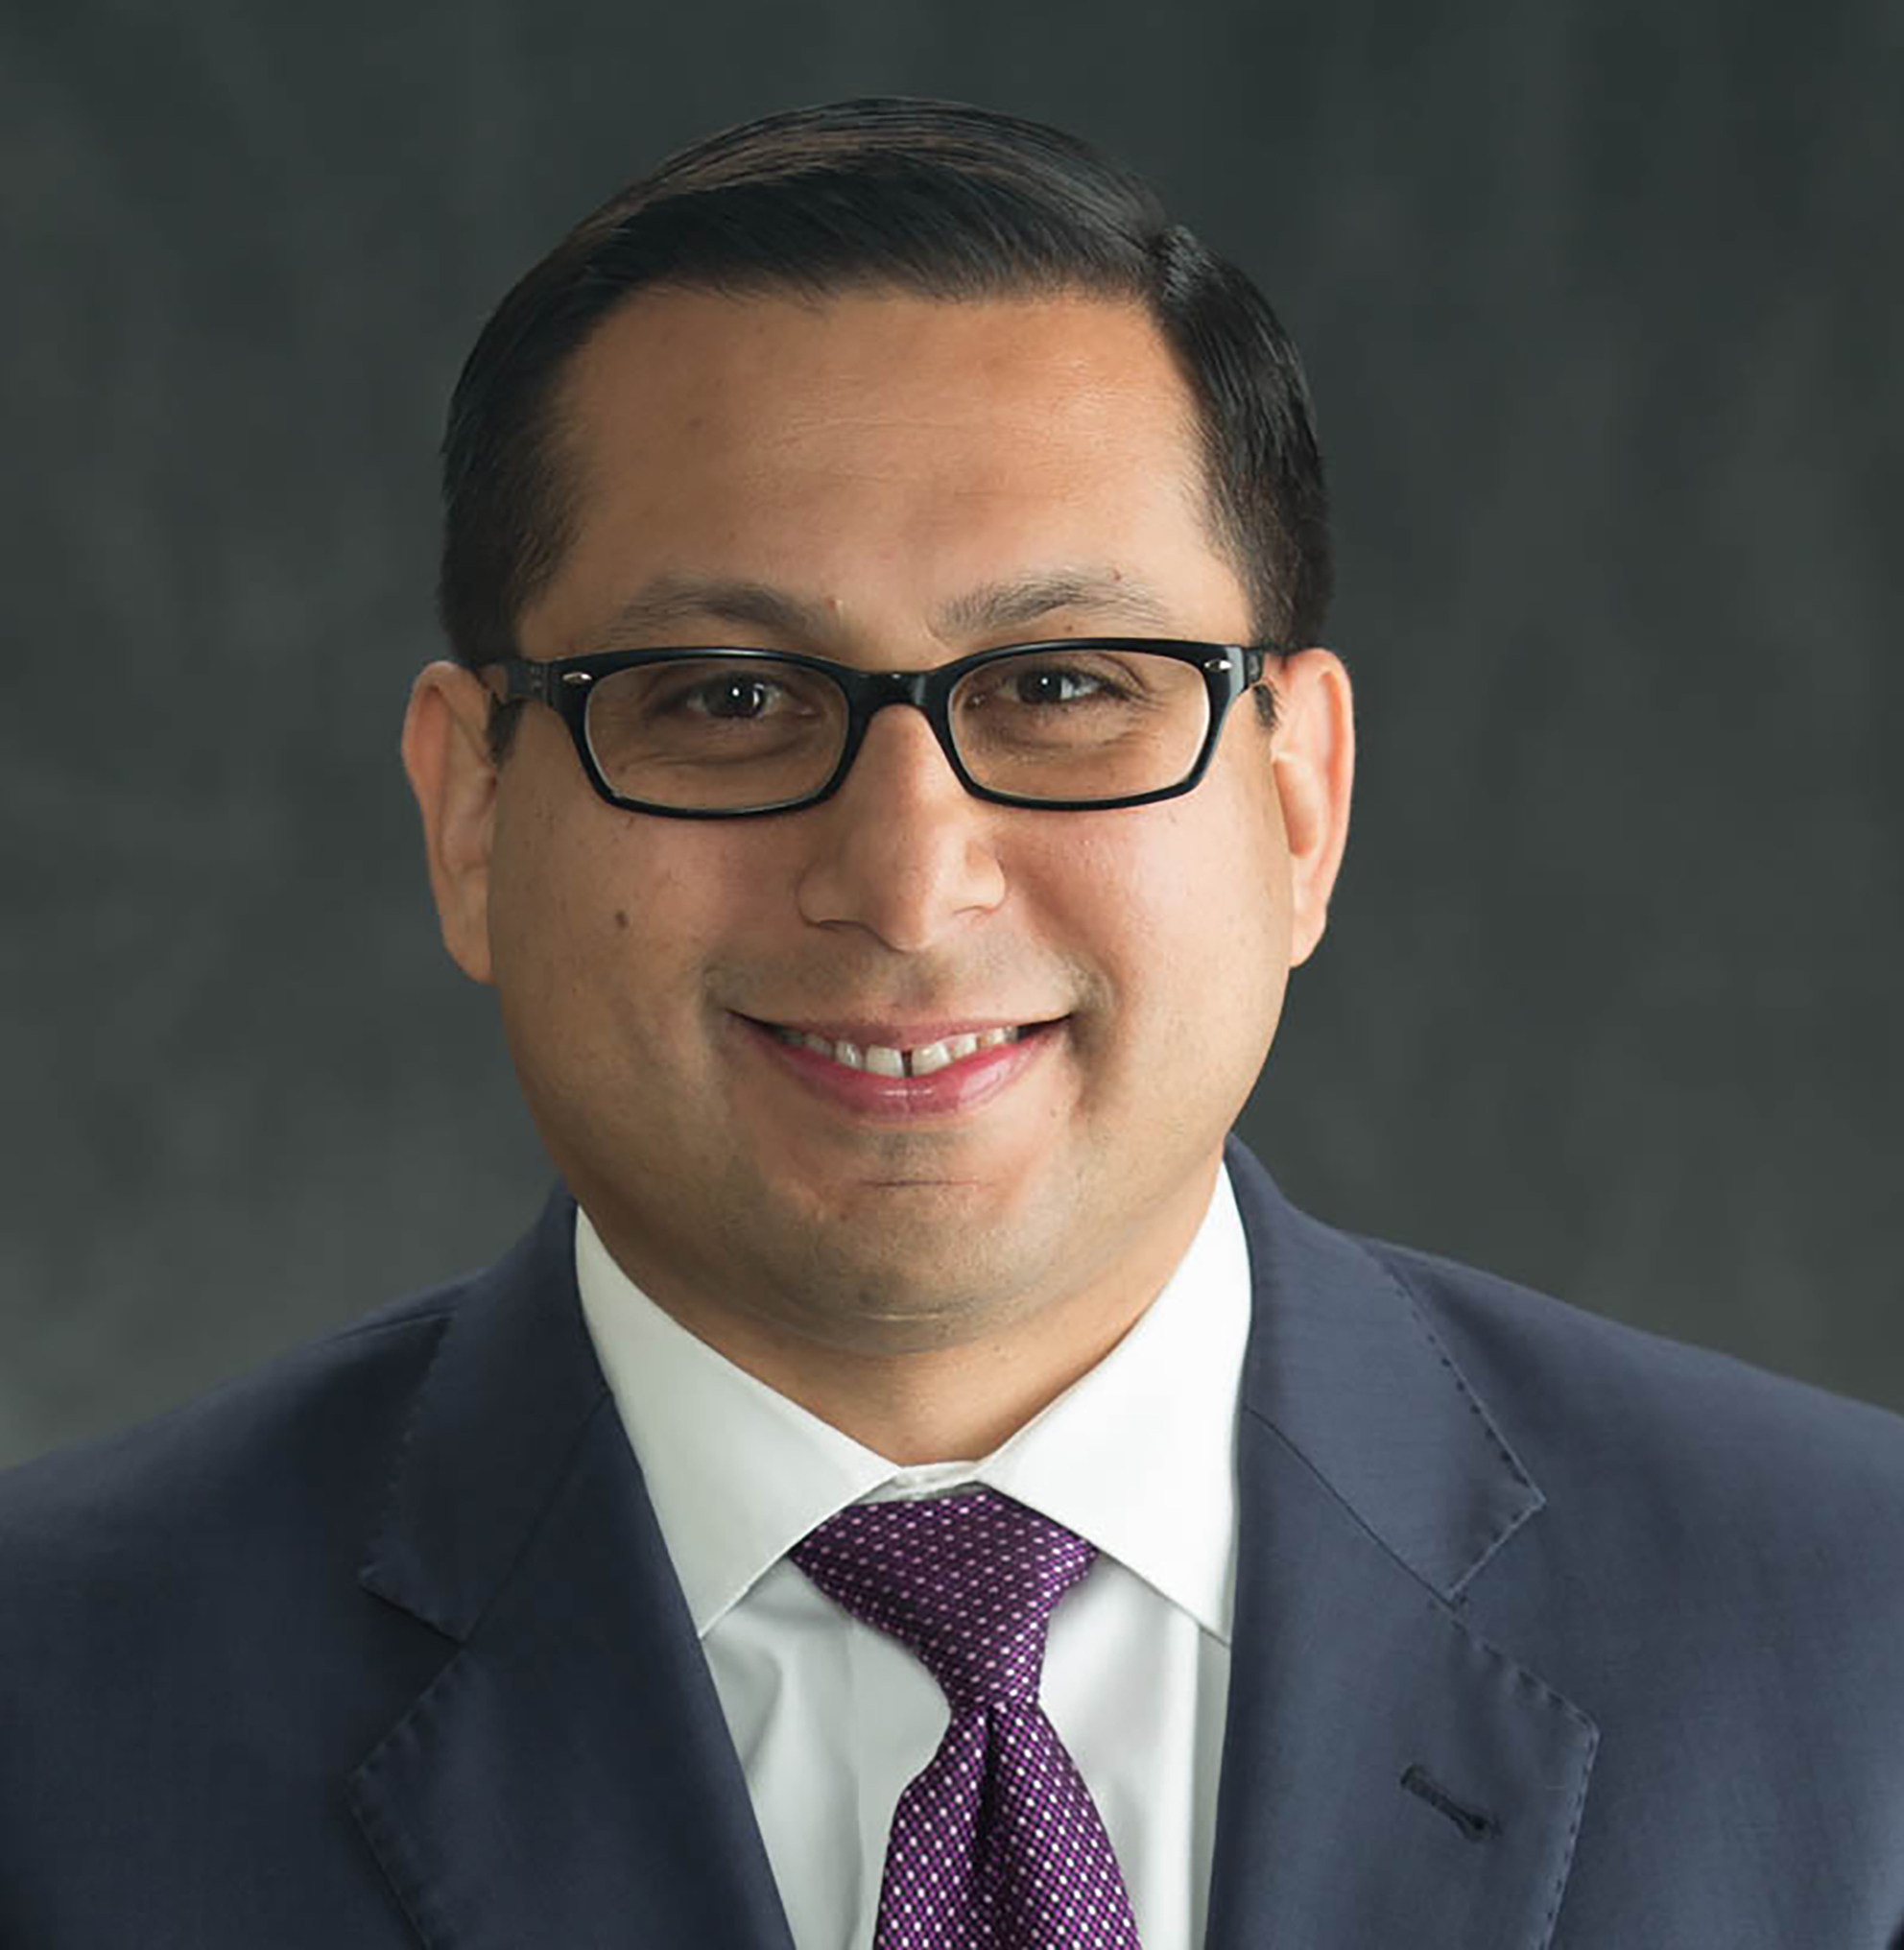 Rep. Bernal Diego